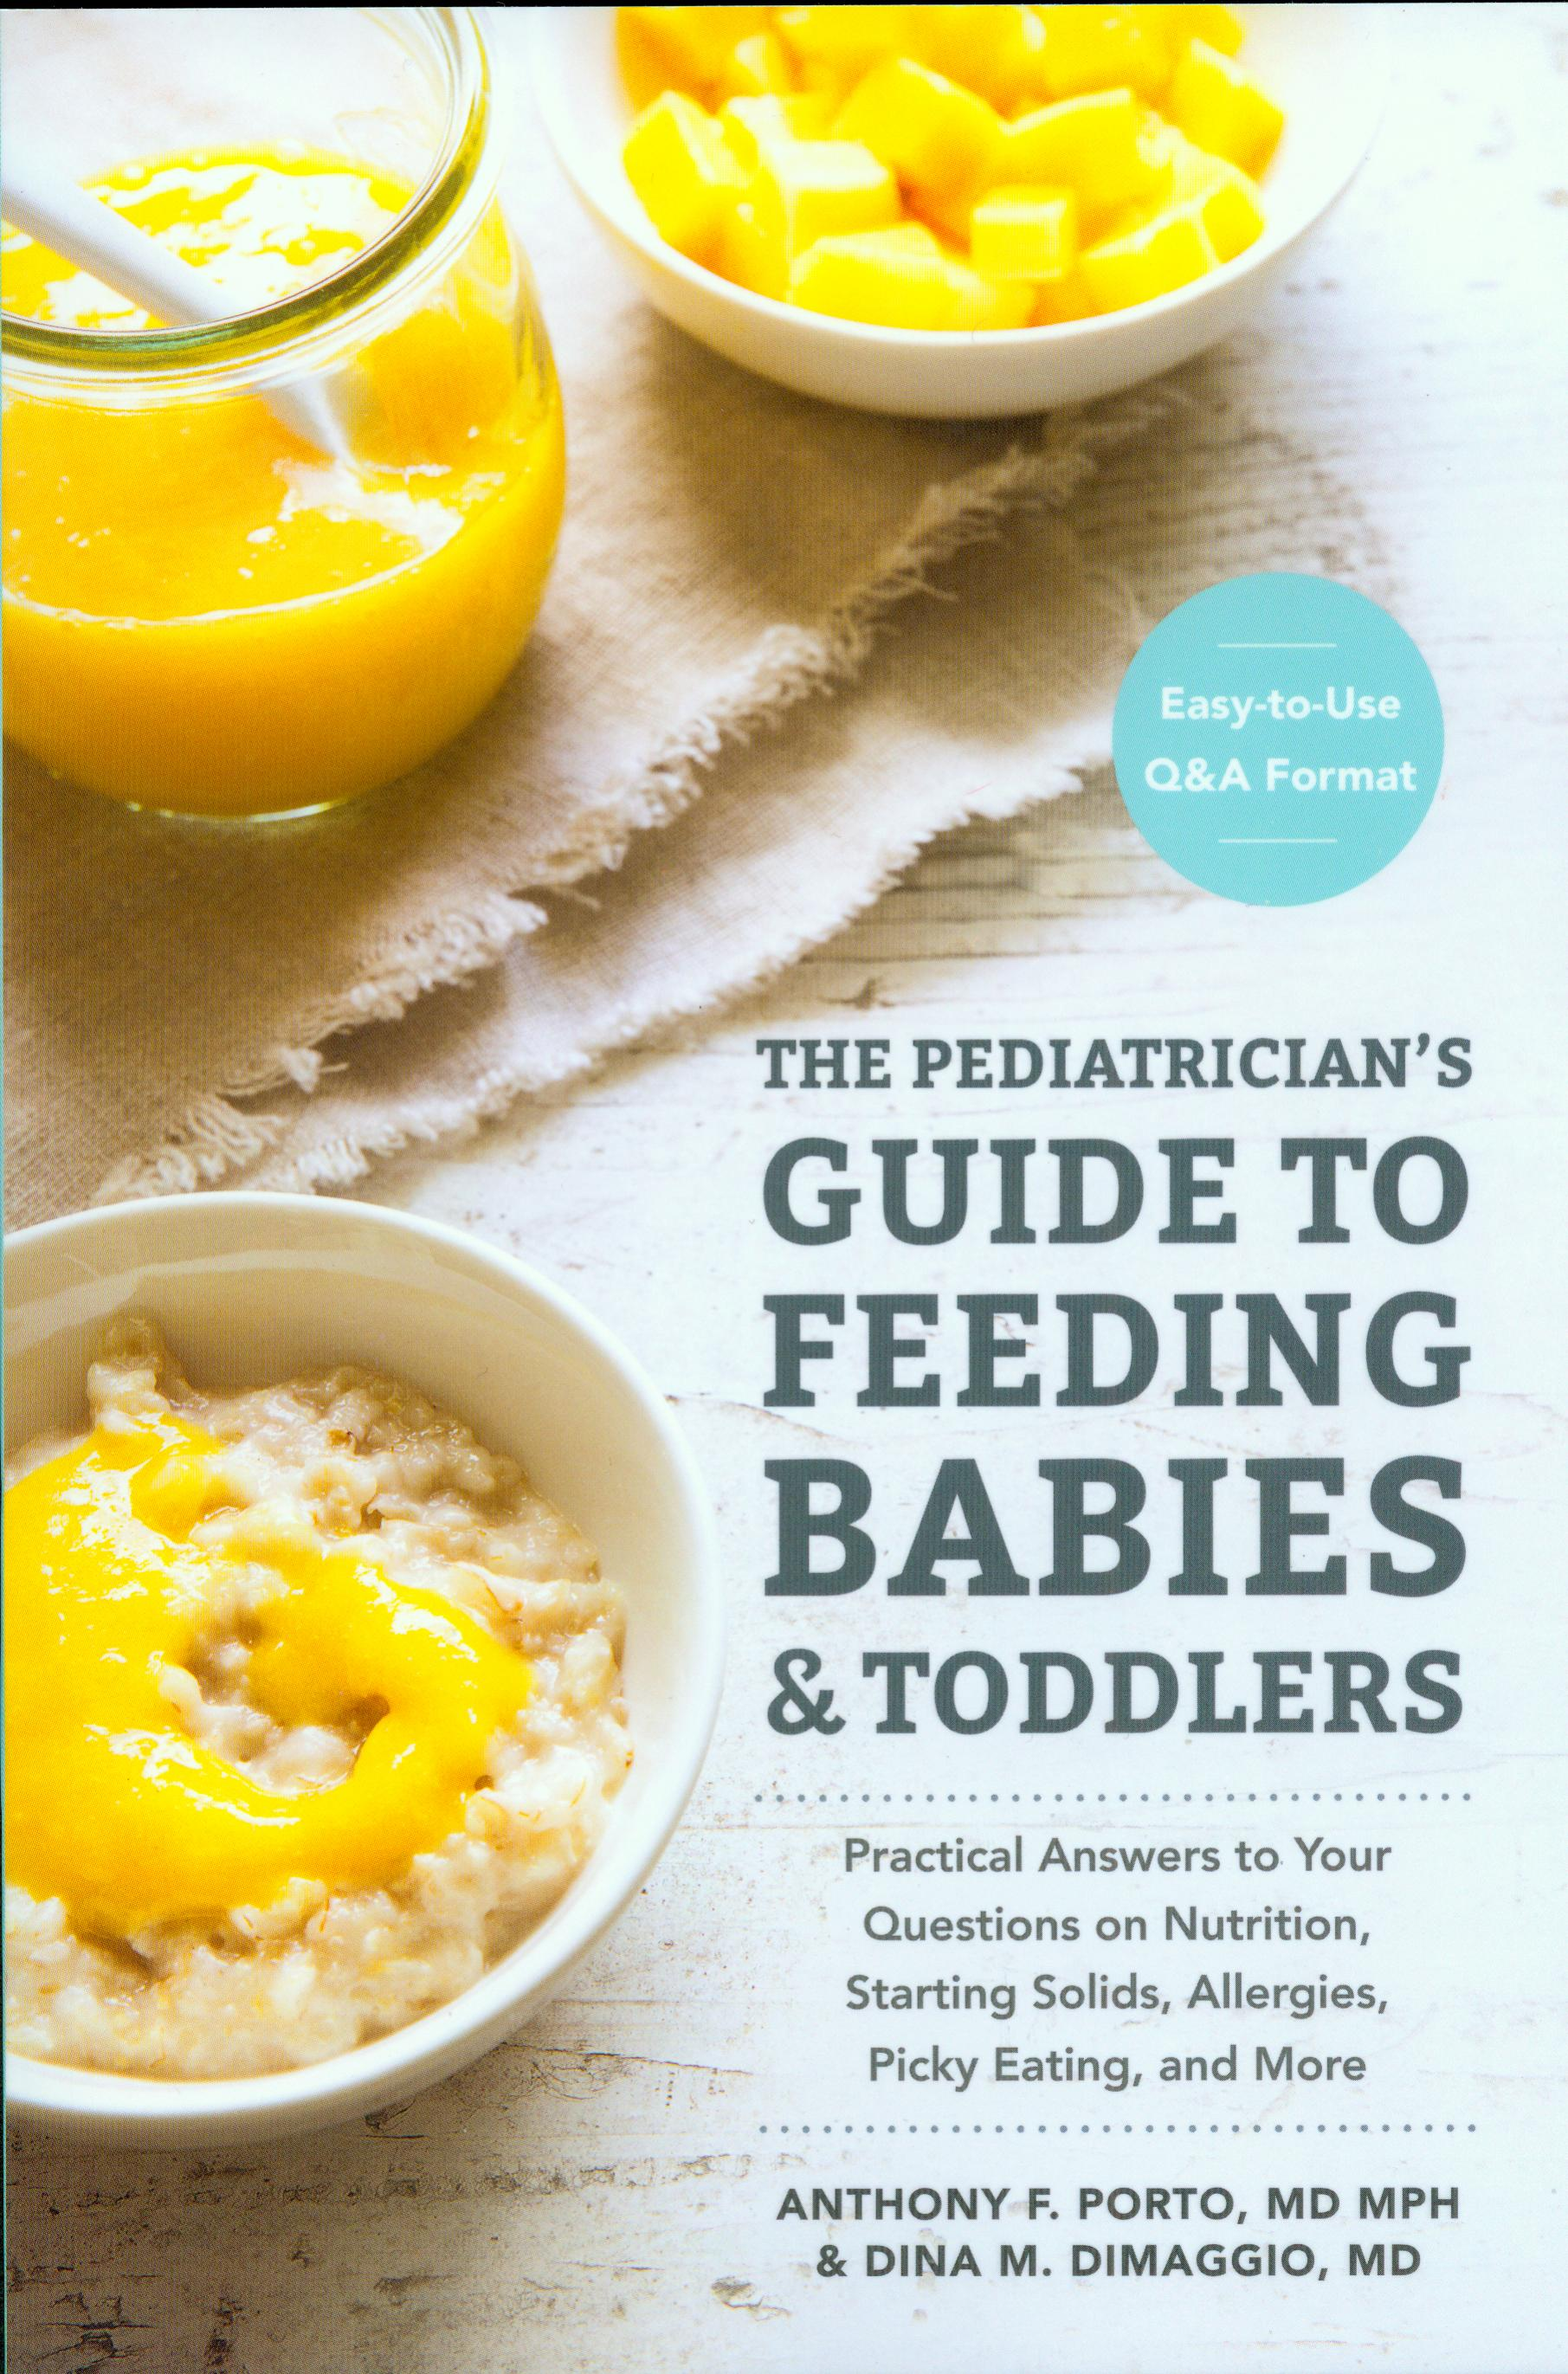 Feeding Babies & Toddlers